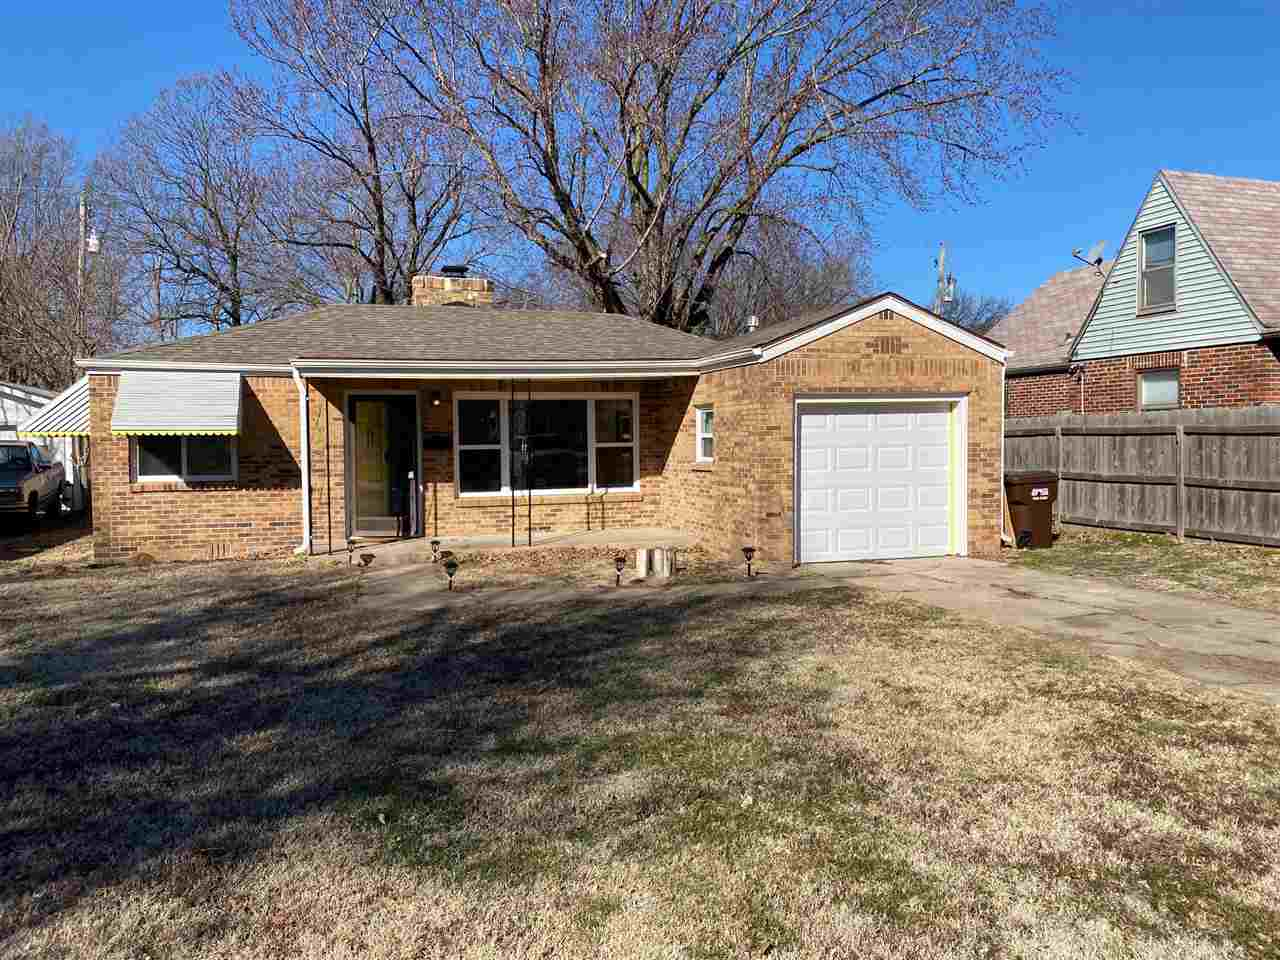 Everything is brand new in this full brick open floor plan house including kitchen, bath, flooring,